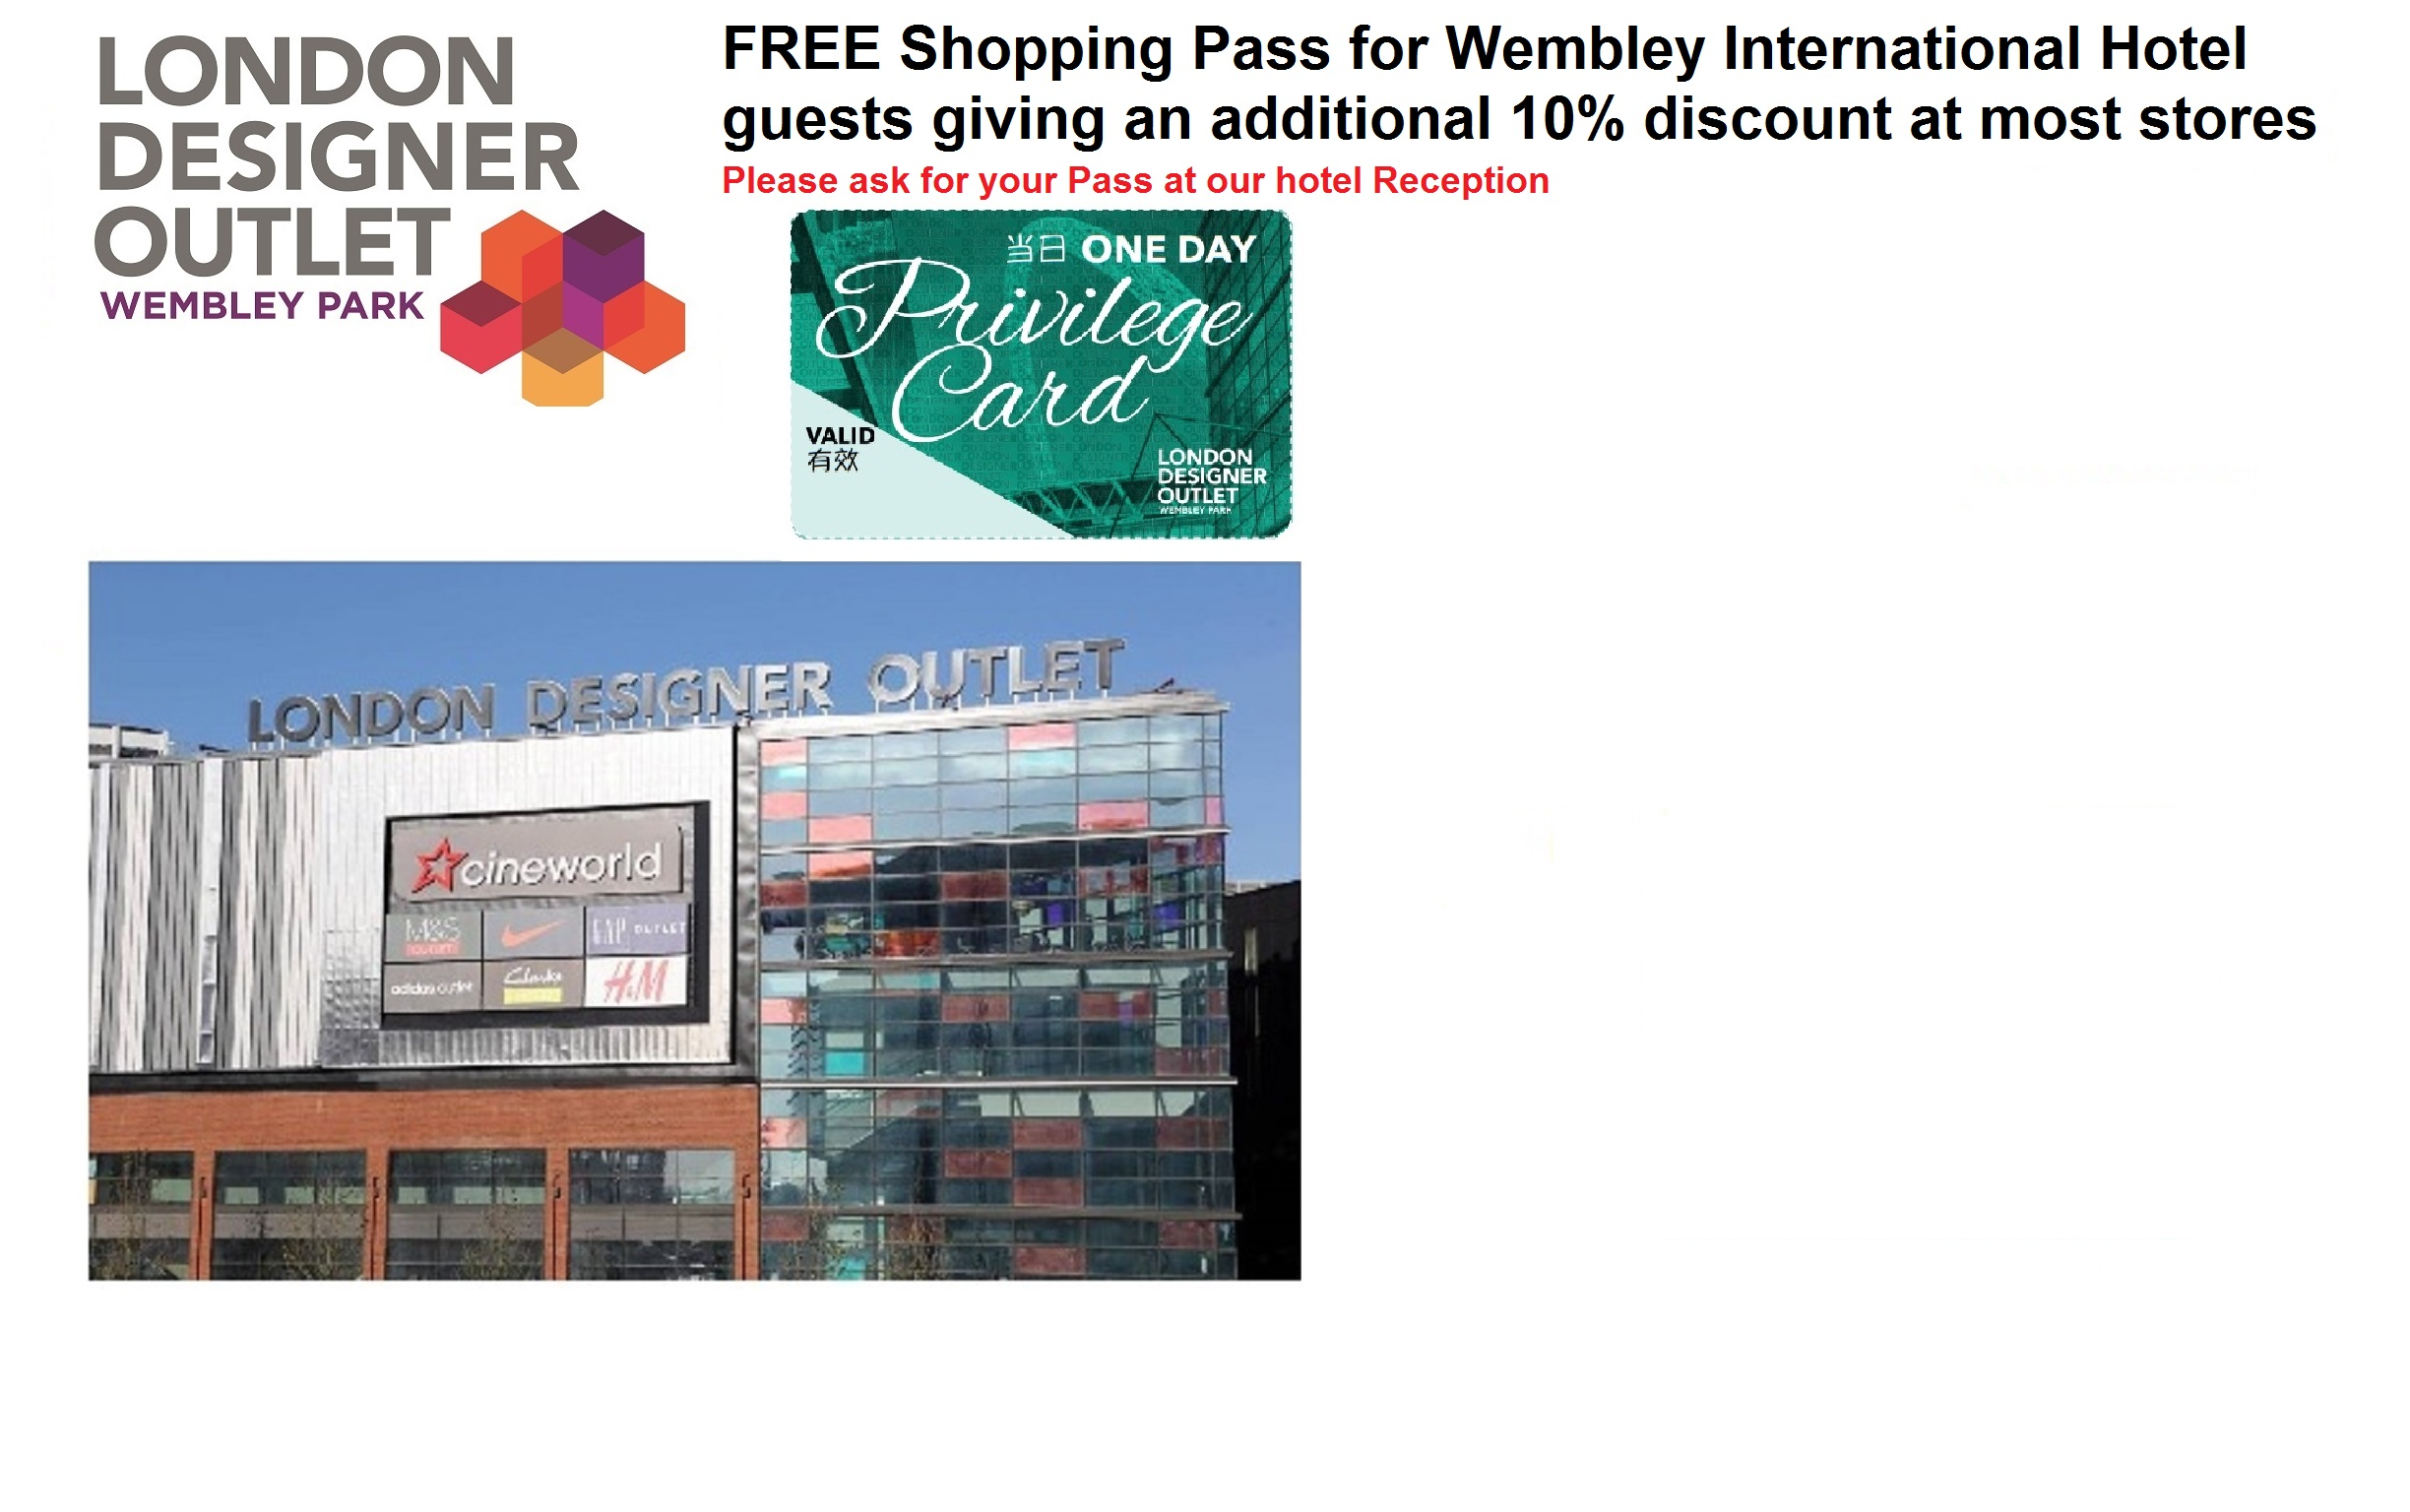 Free Wembley Shopping Pass